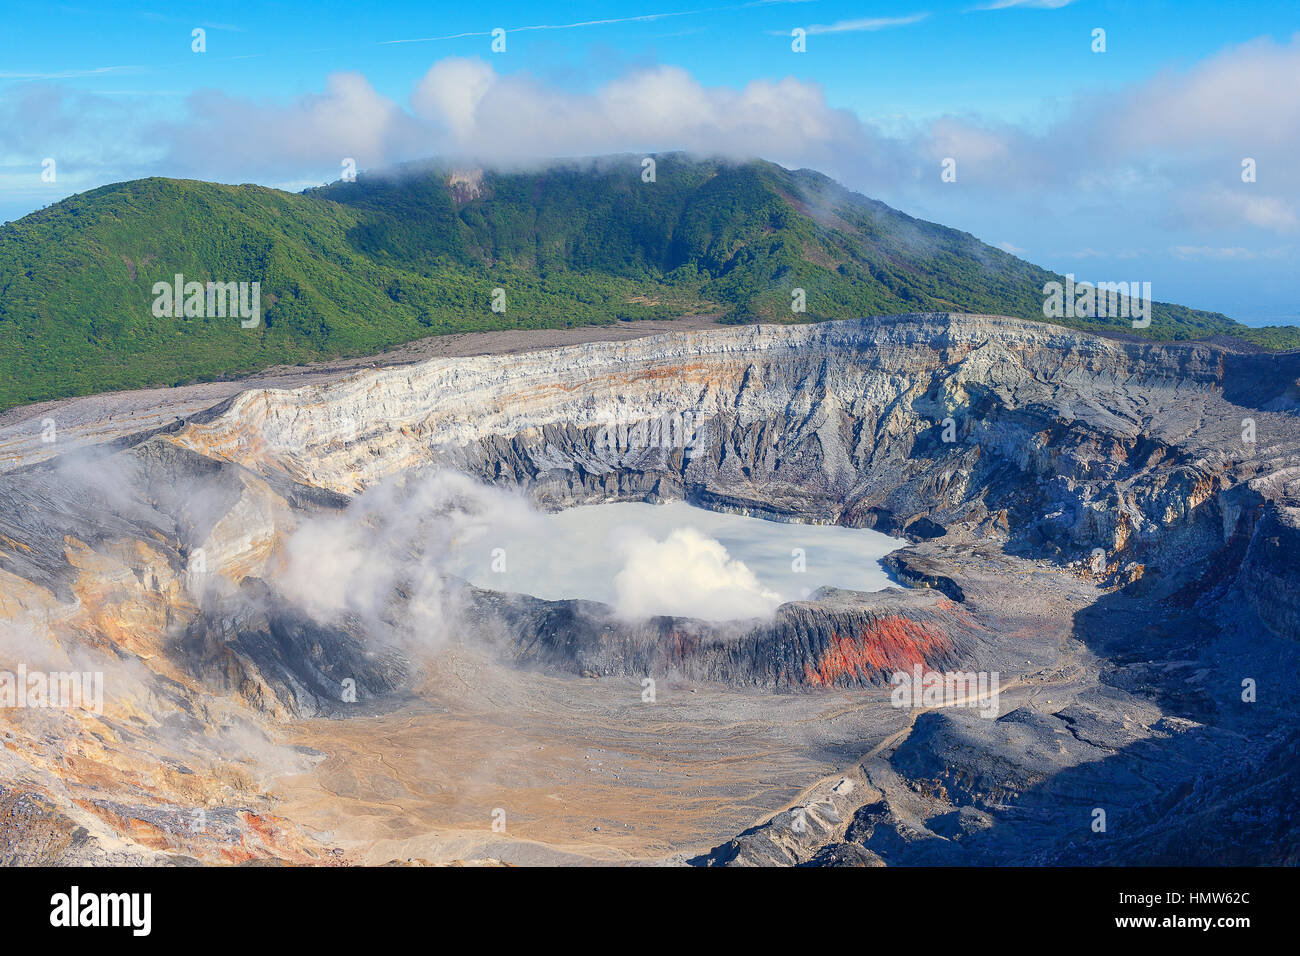 Caldera with crater lake, steam rising from Poas Volcano, Poas Volcano National Park, Costa Rica - Stock Image